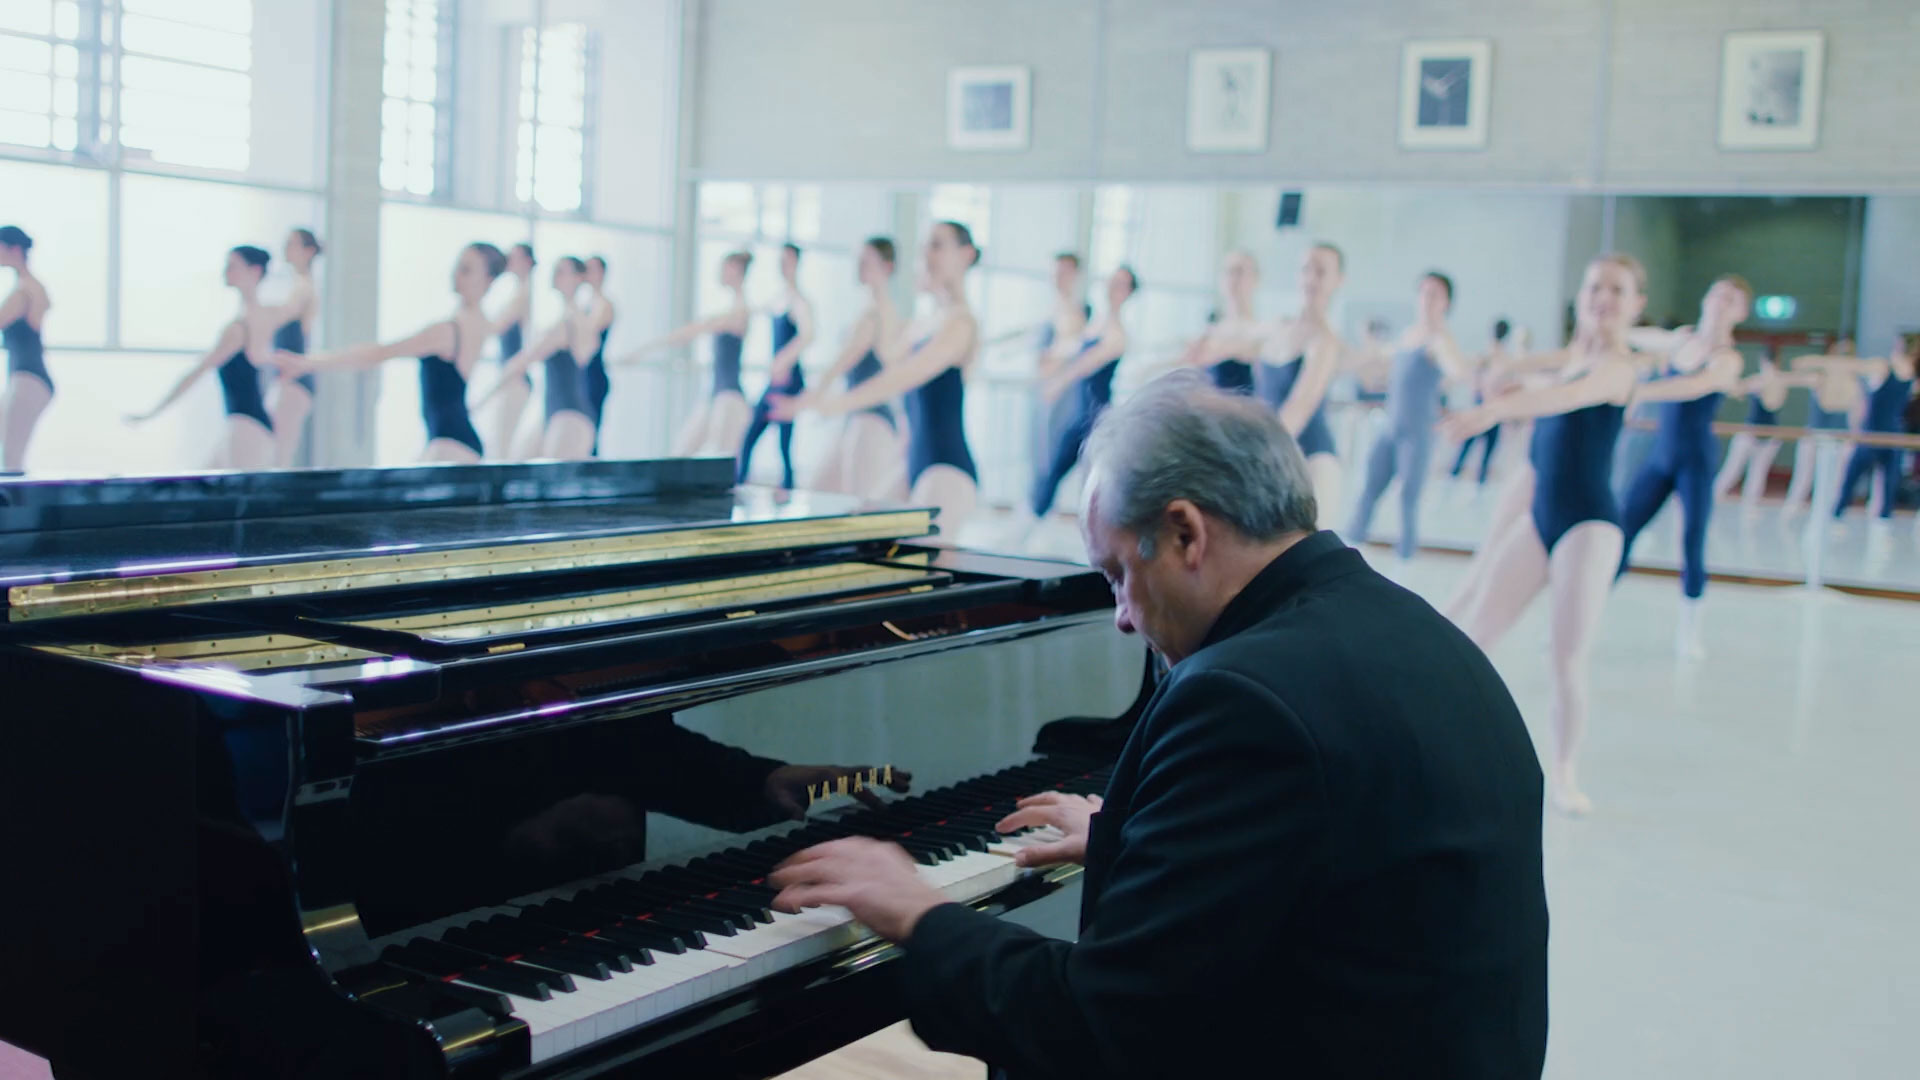 Man playing piano with ballet dancers performing